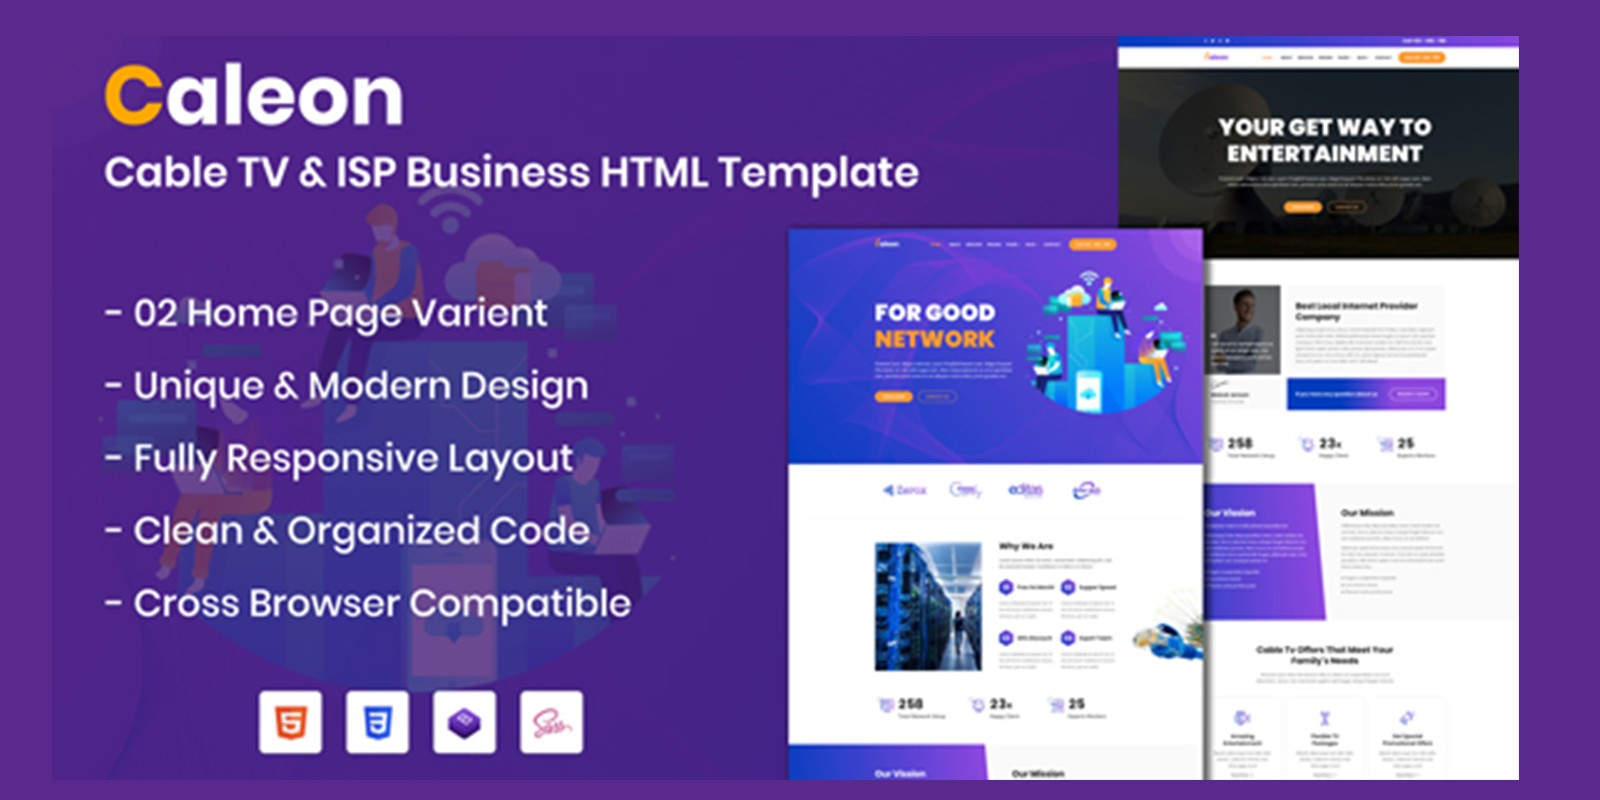 Caleon - Cable TV And ISP Business HTML Template